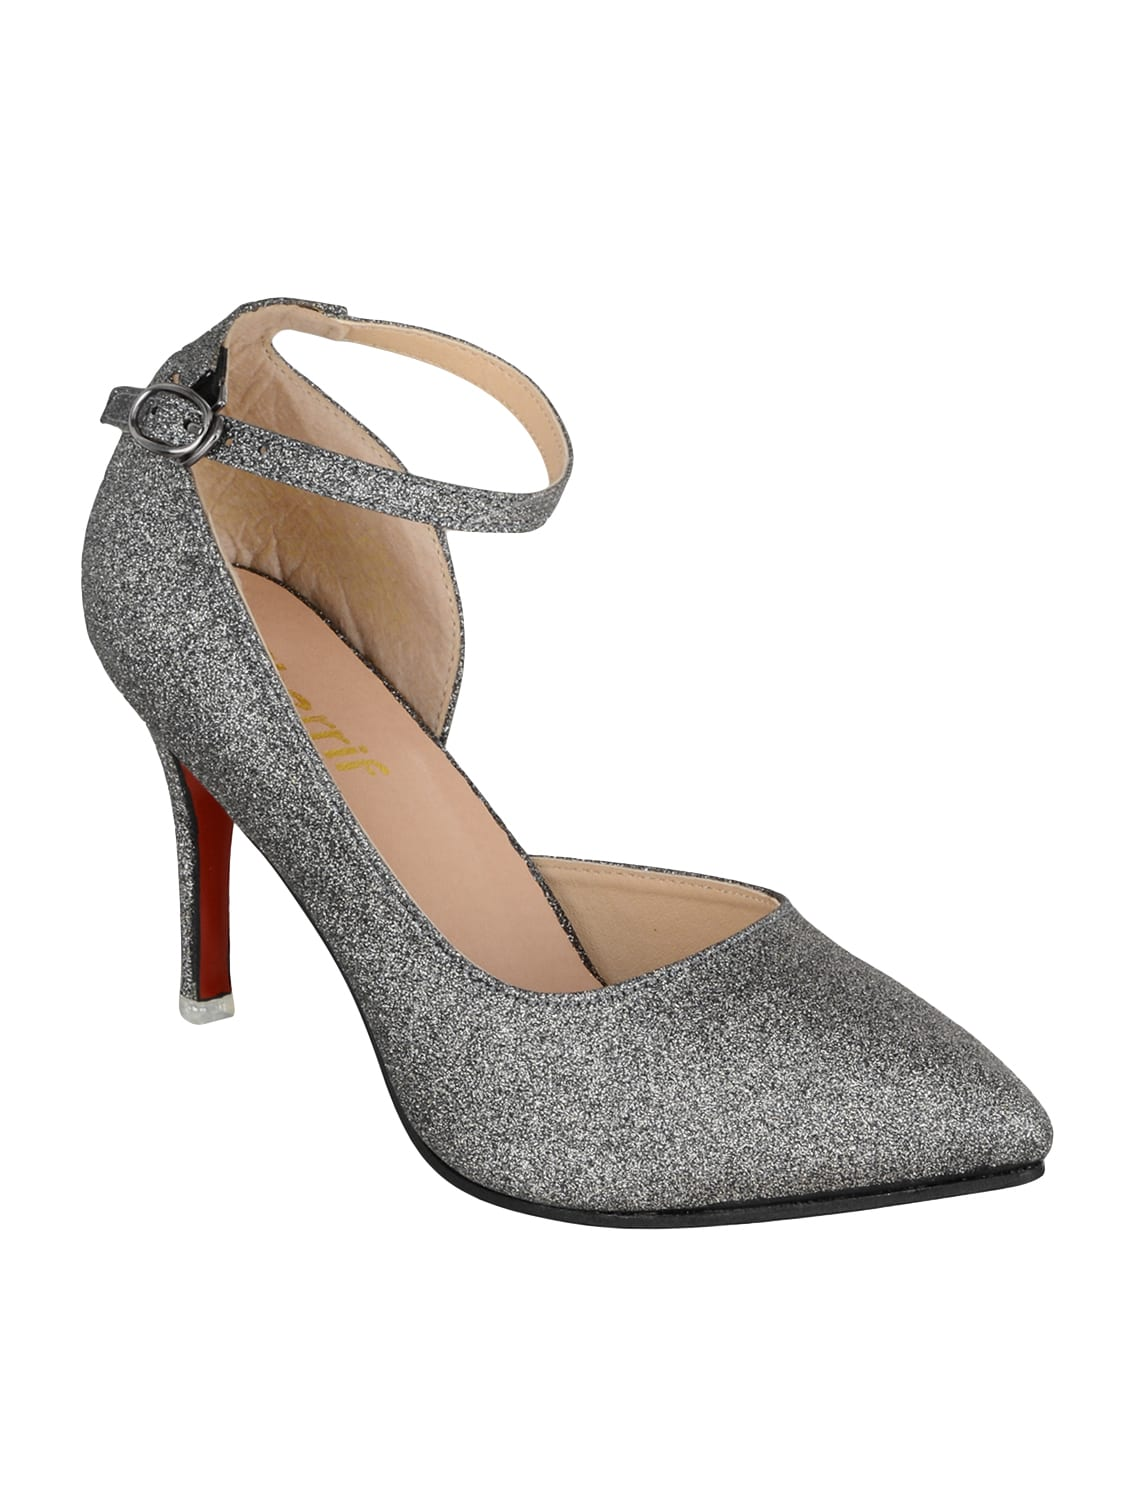 ebd5a28633b Buy Grey Faux Leather Ankle Strap Sandals by Sherrif Shoes - Online  shopping for Sandals in India